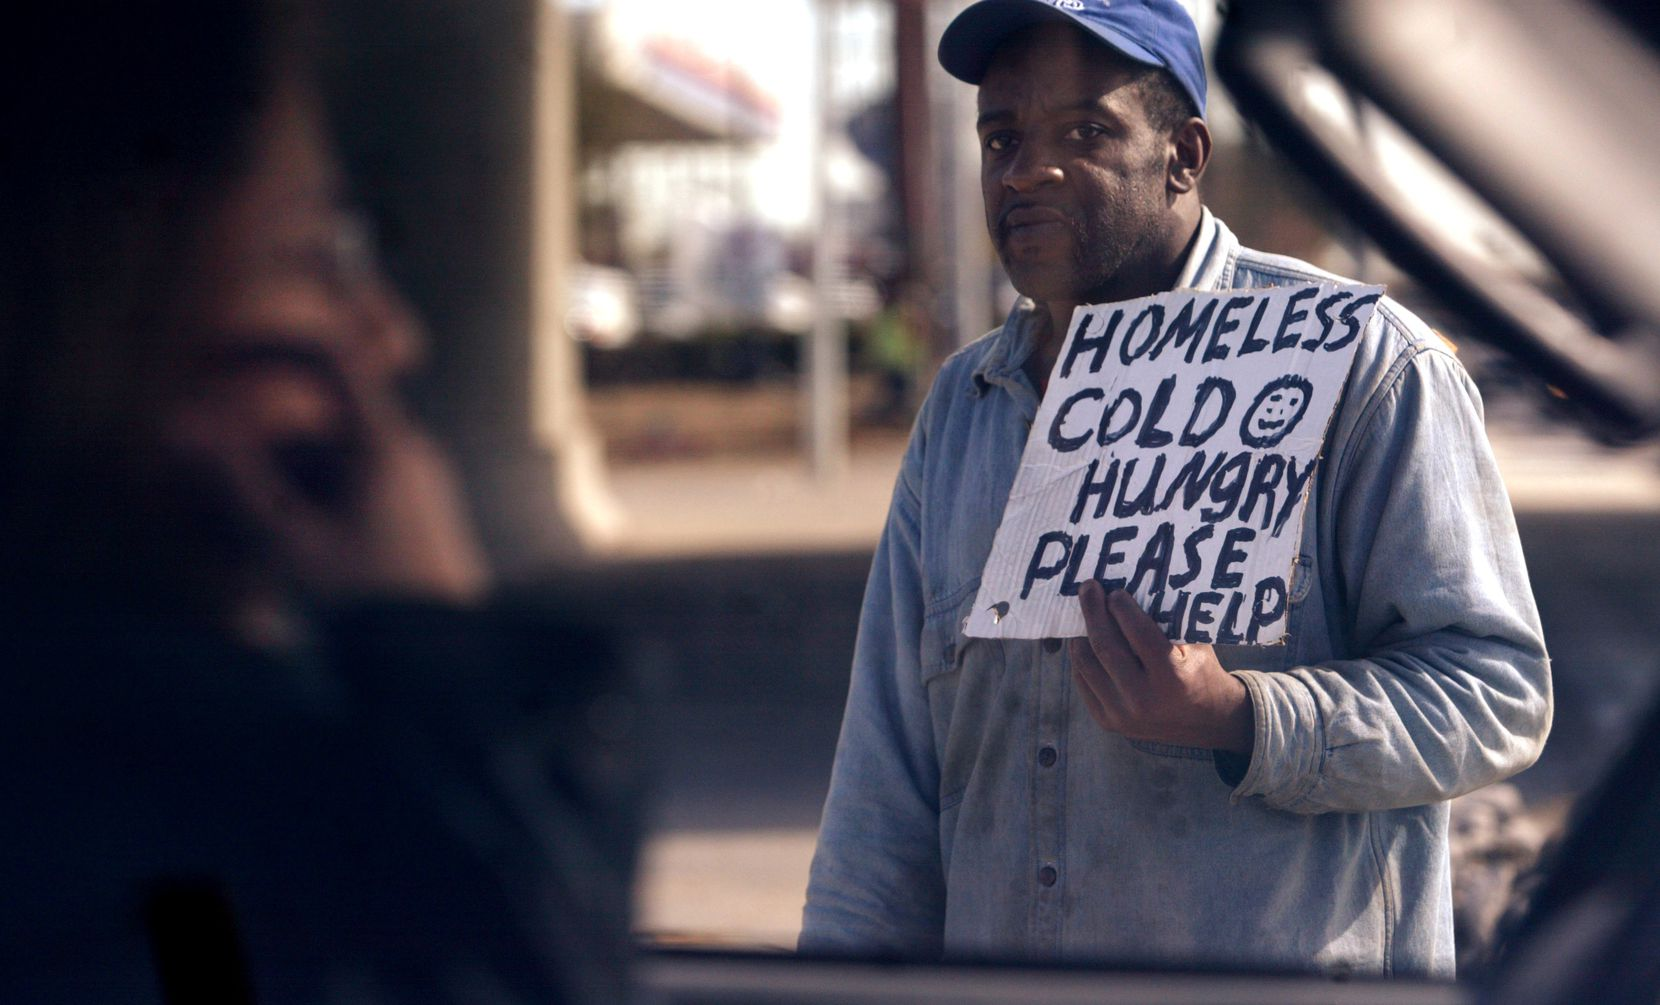 """An anti-panhandling law in Dallas was abandoned in 2018, and a subsequent awareness campaign recently failed. Now some Dallas city council members want the city manager to address """"aggressive panhandling"""" in his proposed budget."""